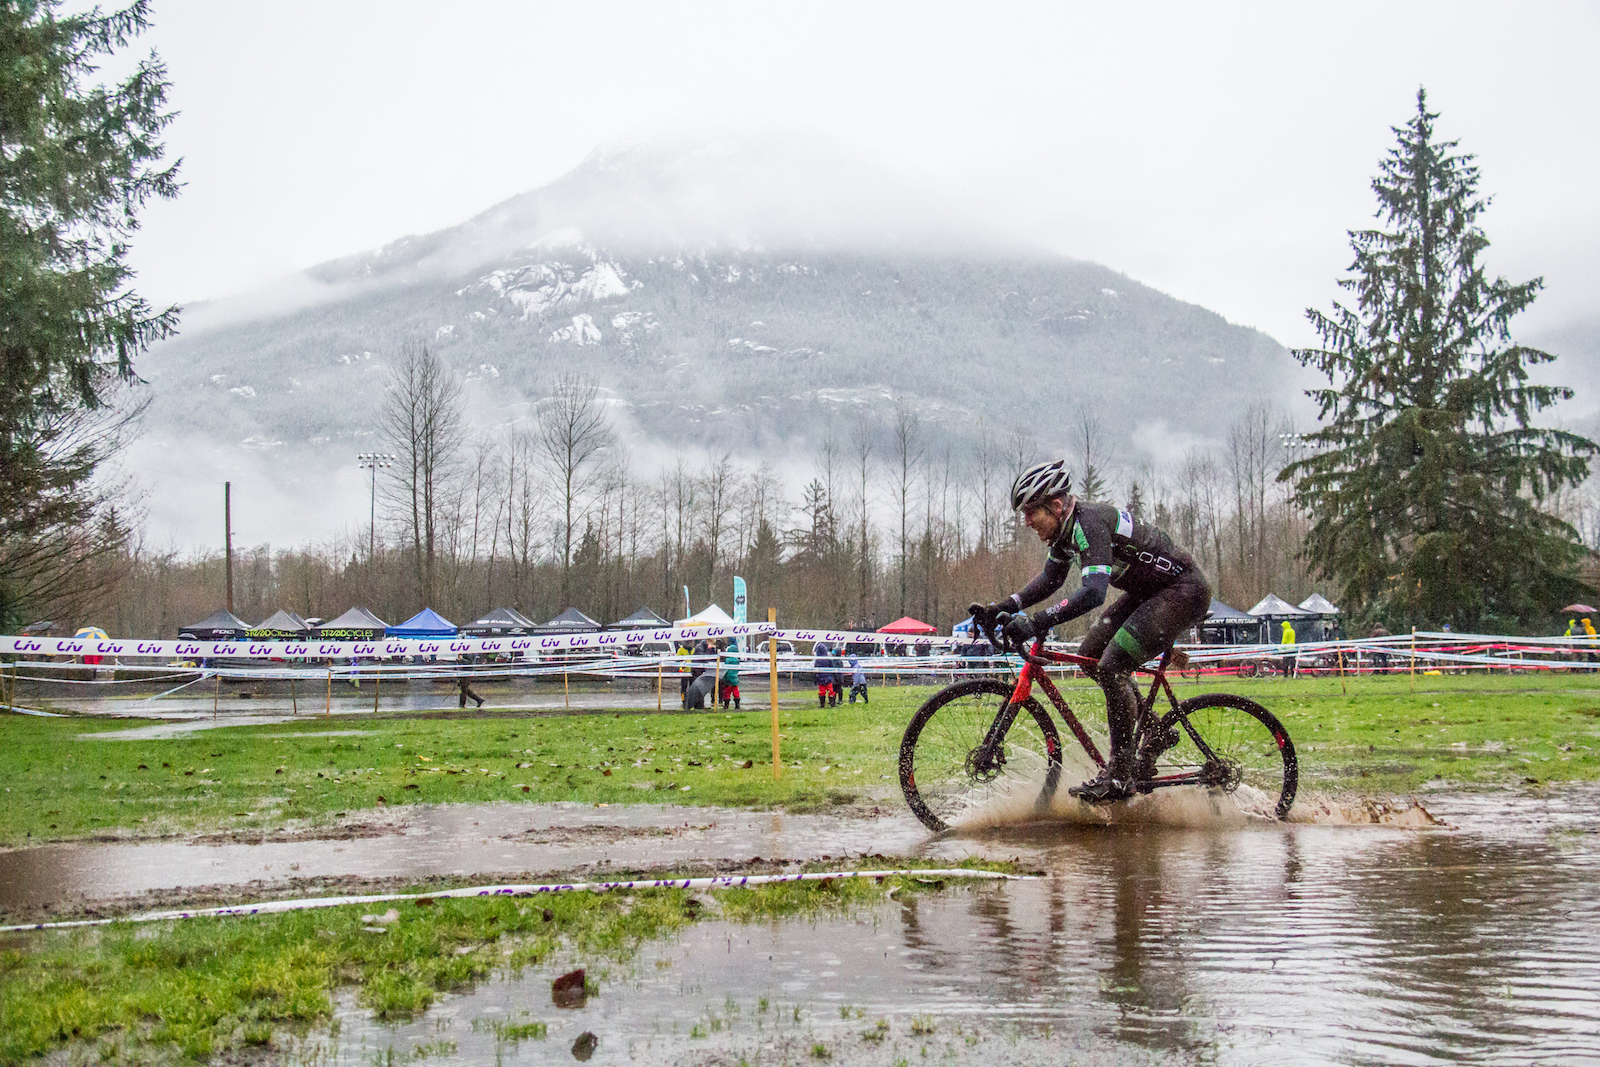 """Jeannine Avelino, Canada. """"A cyclocross racer braves the elements with a beautiful mountain backdrop at the BC Cyclocross Provincials Championships in Squamish, BC this year."""" DSLR. @jeannineavelino"""